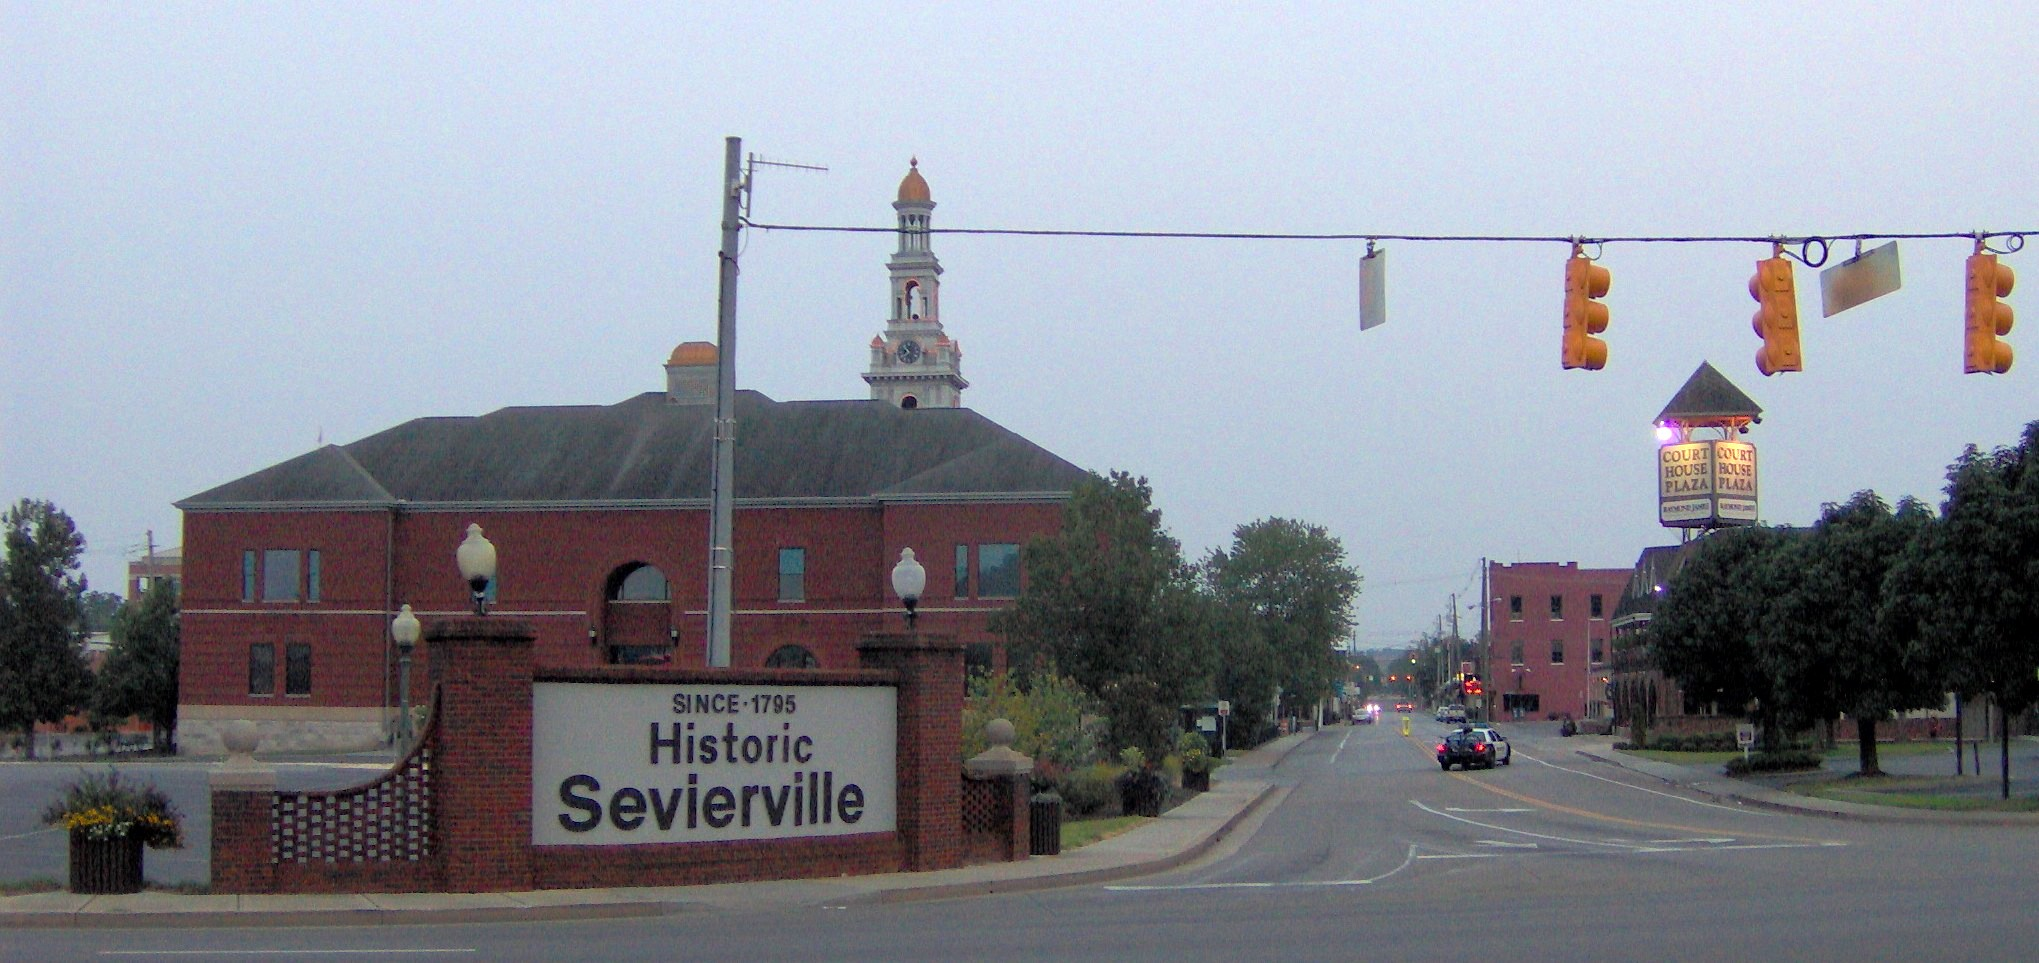 Sevierville-historic-district-entrance